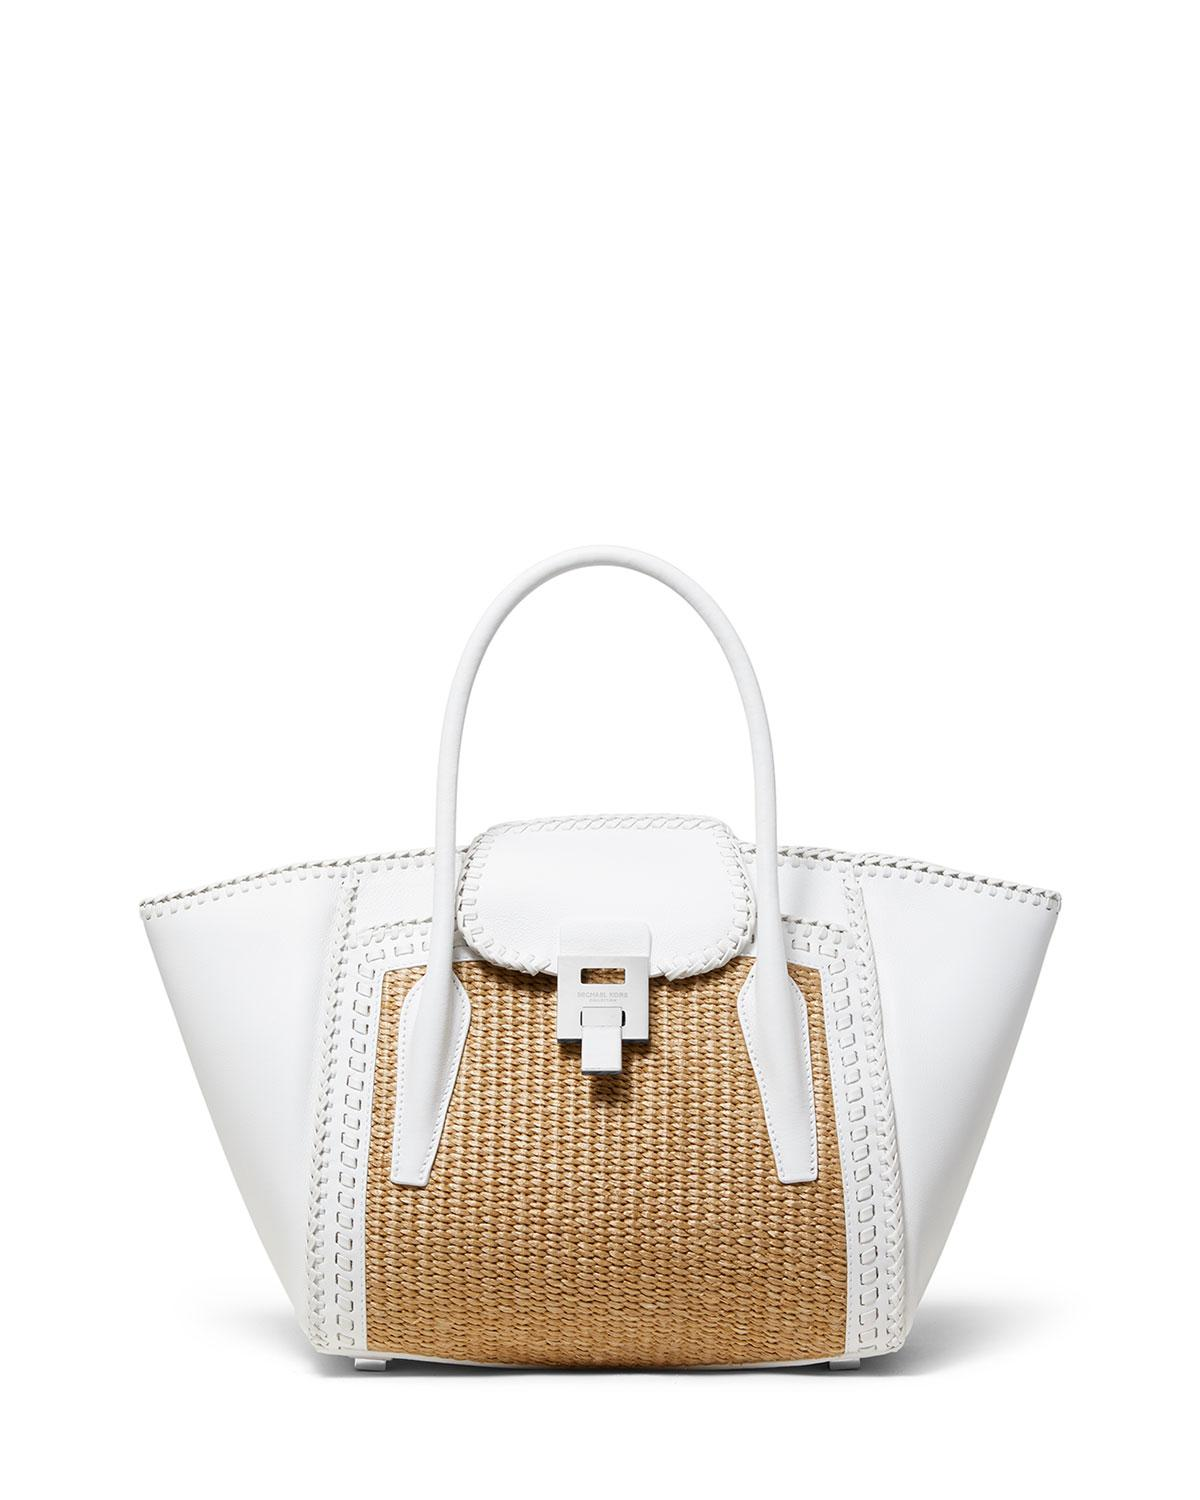 7d3cd94bcc84 Michael Kors Straw And Leather Medium Satchel Bag in White - Lyst